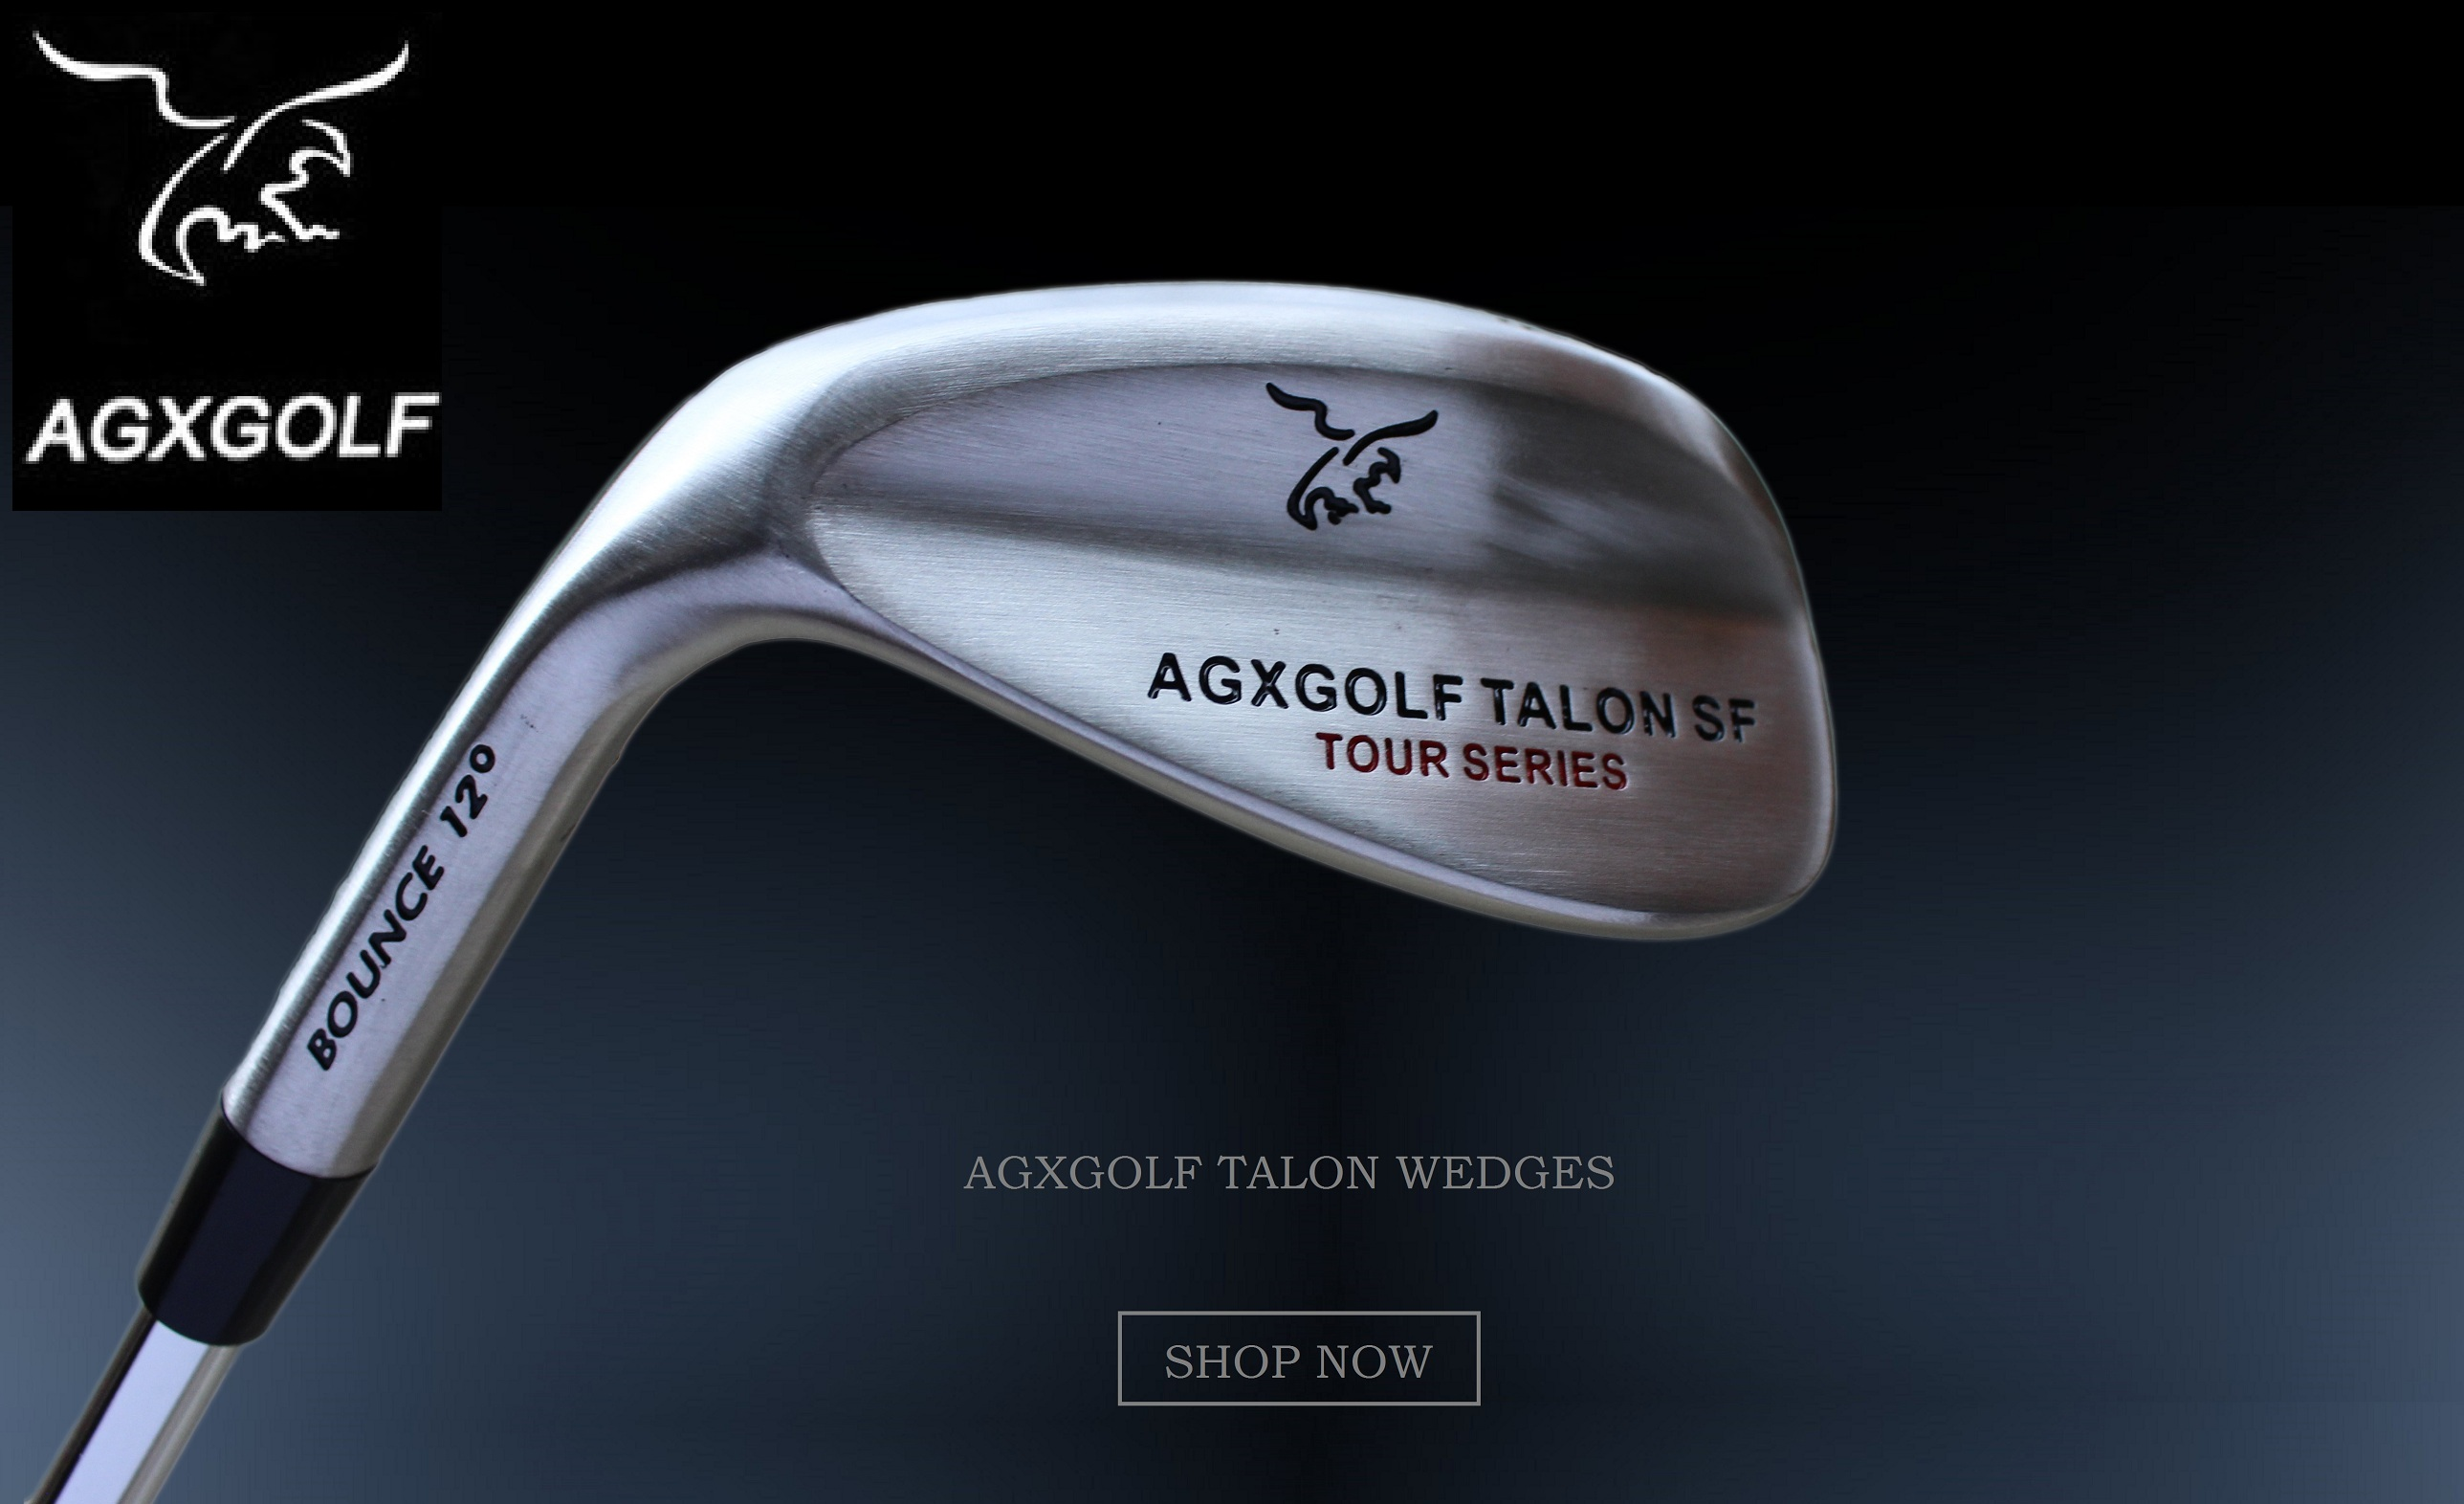 AGXGOLF TALON WEDGES